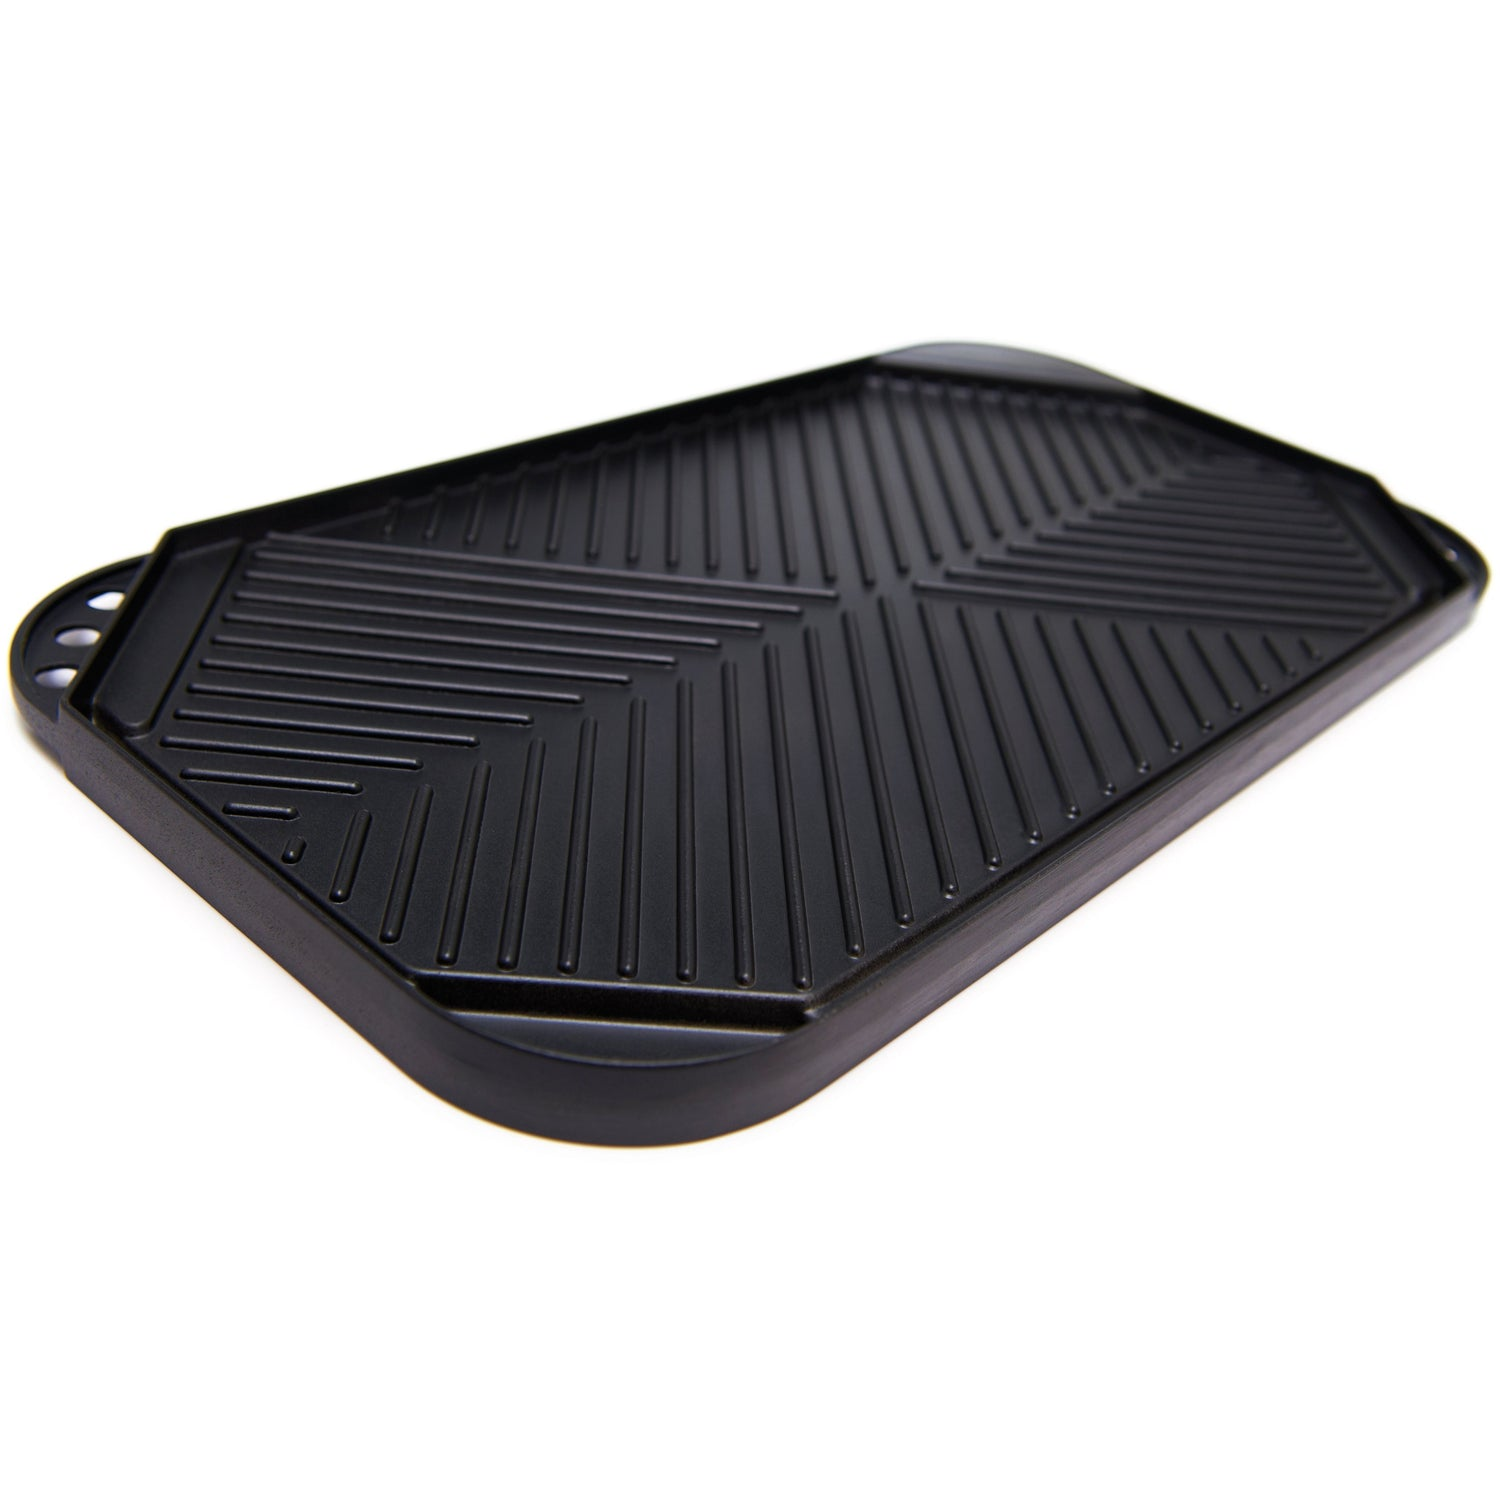 Grill Pro Non-Stick Cast Iron Griddle